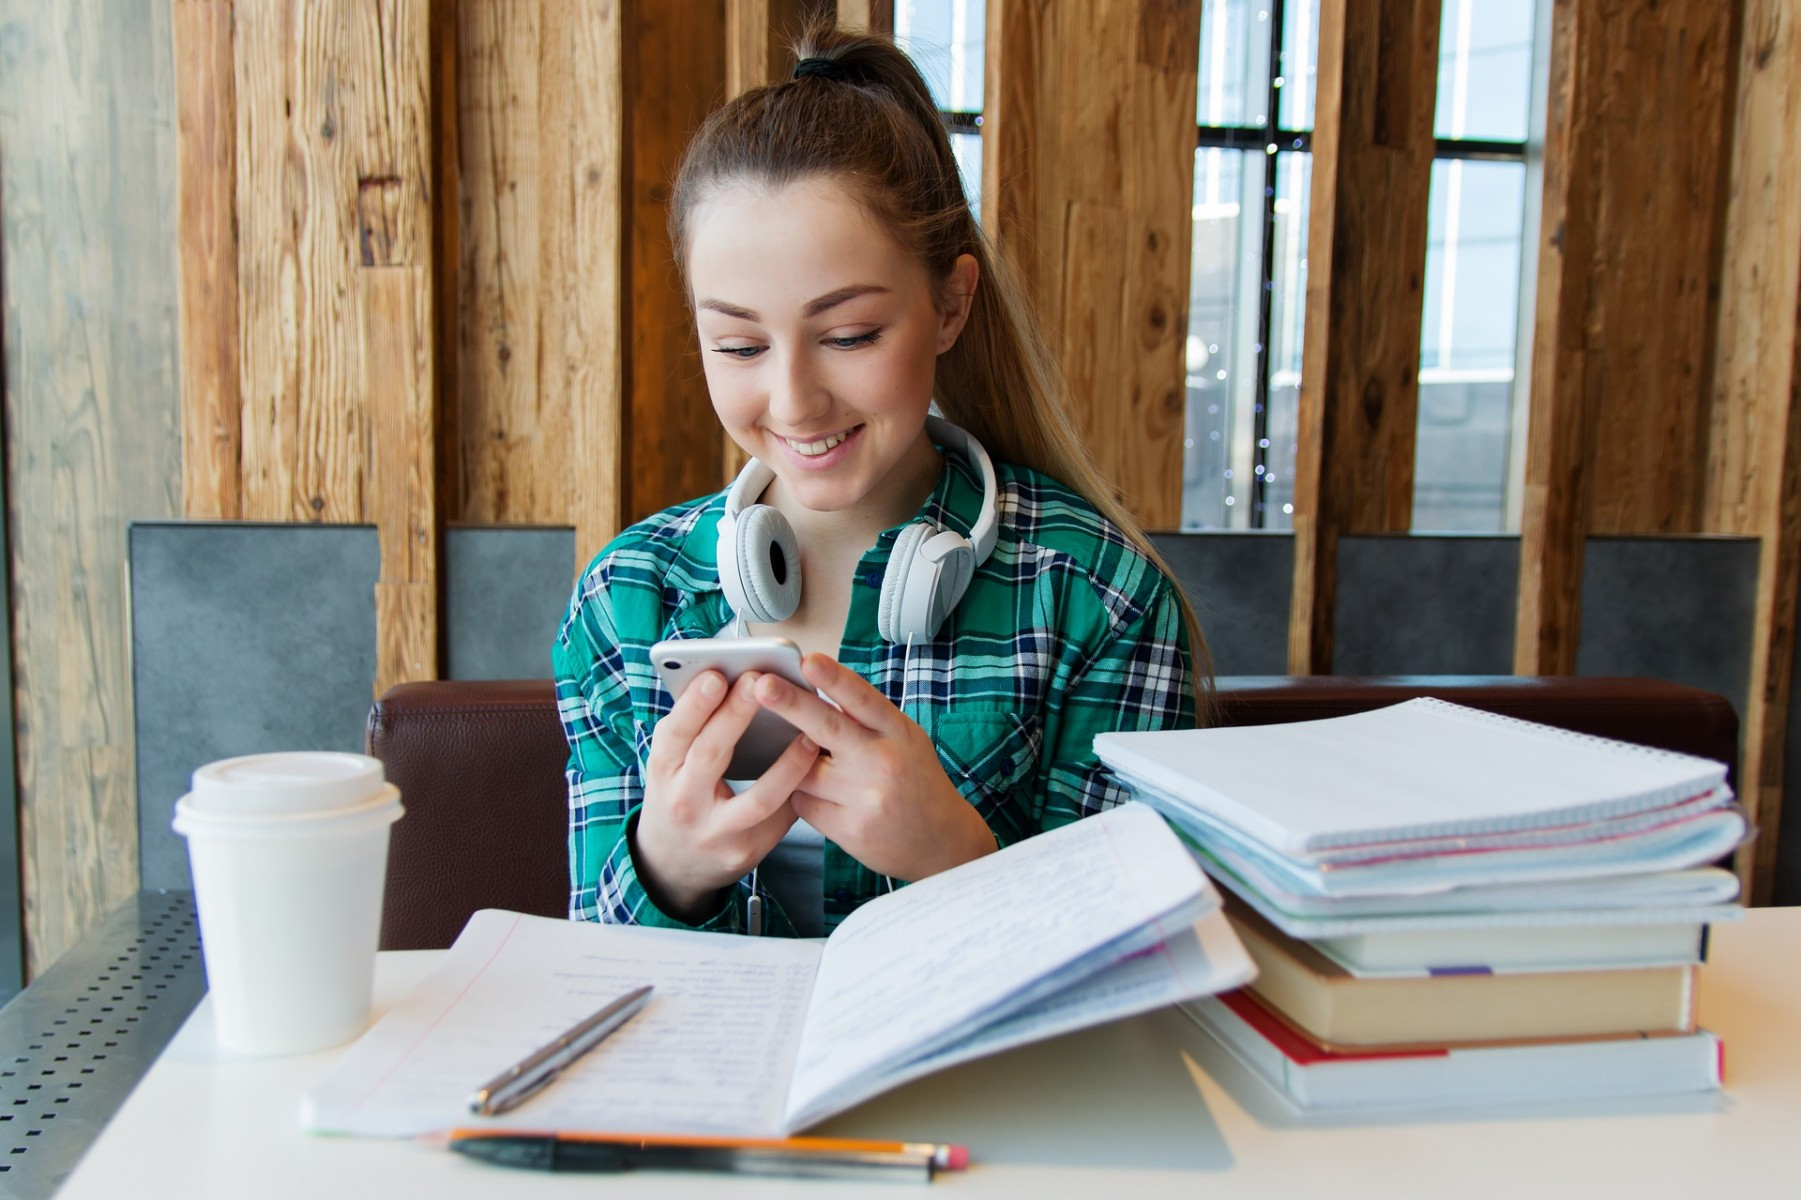 Combining homework and texting with friends leaves teens with mixed feelings.